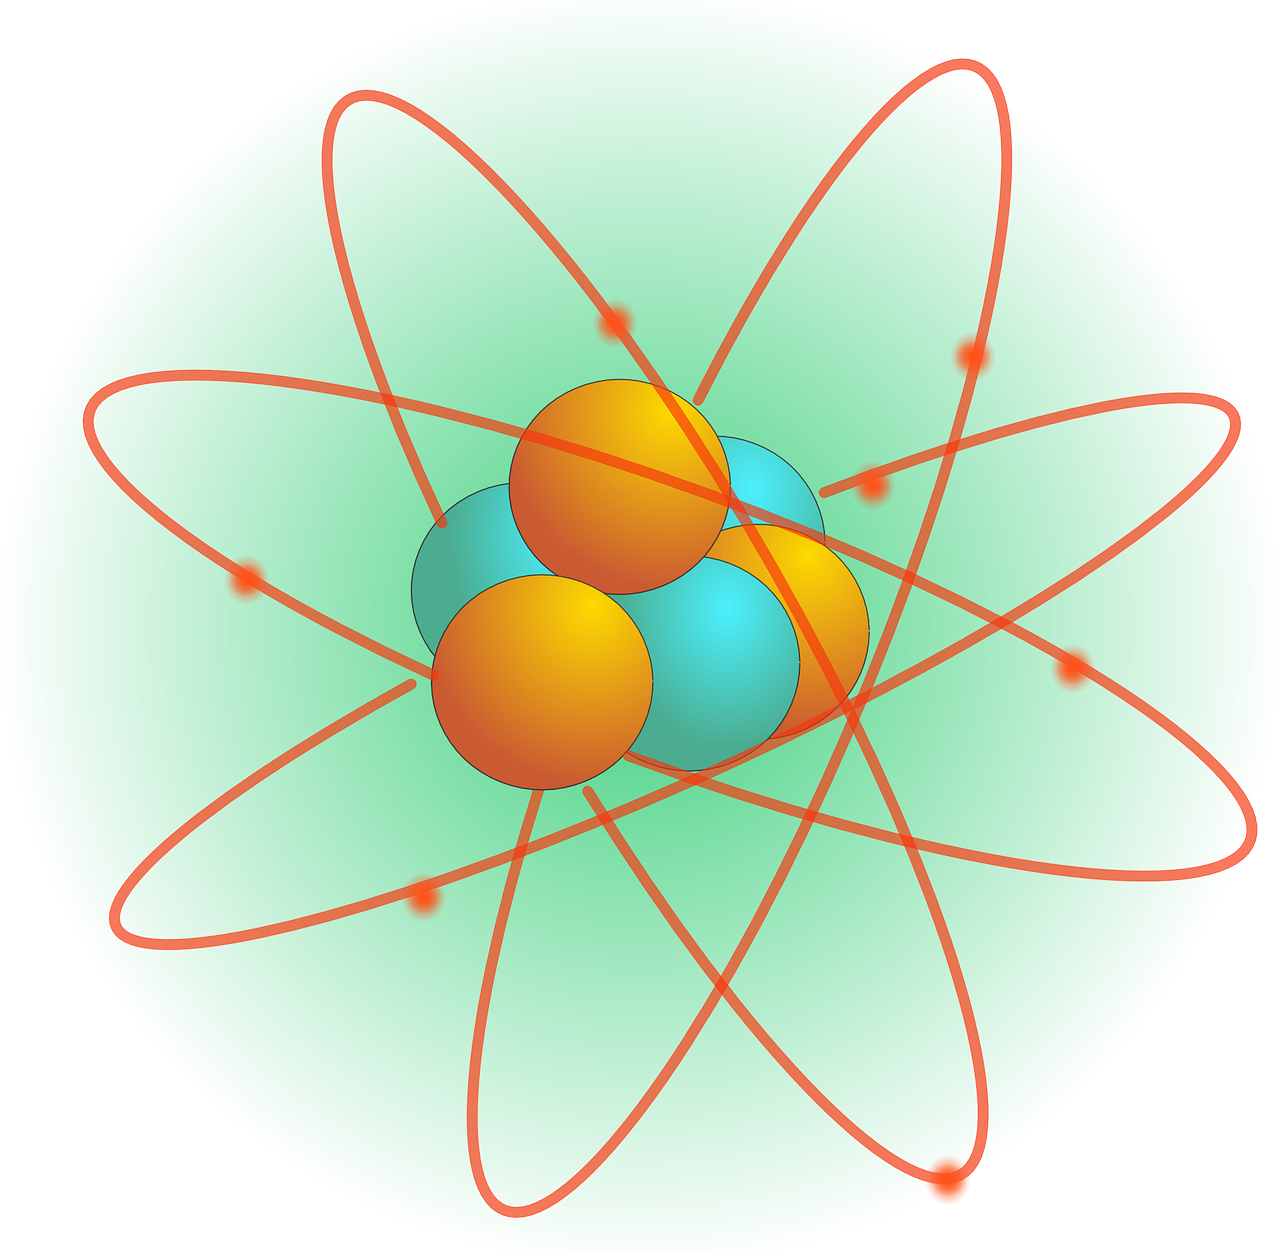 Nuclear atomic structure pencil. Atom clipart colorful